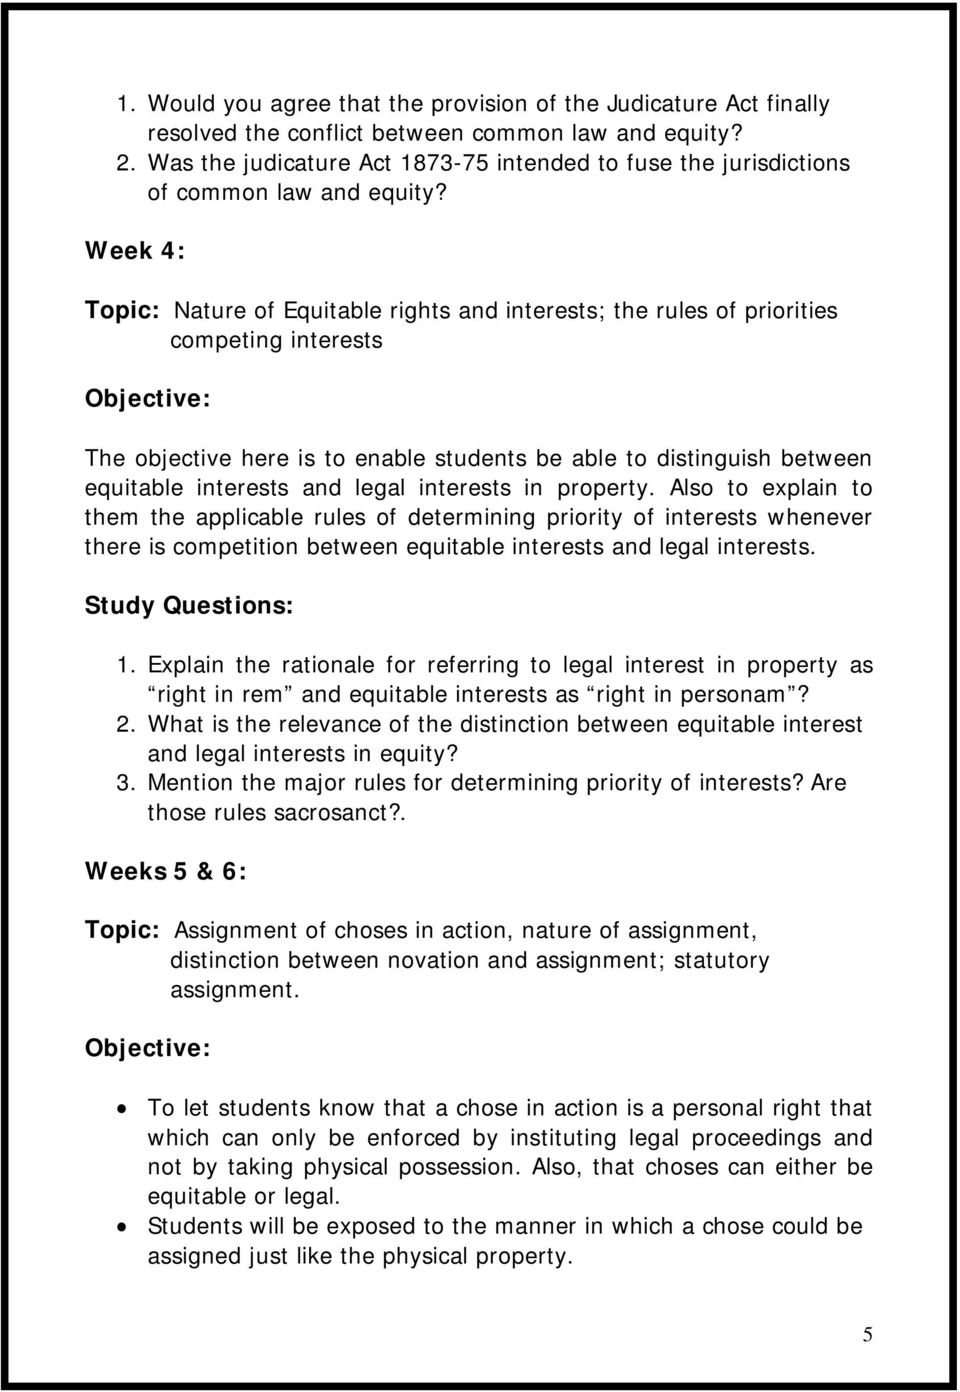 Week 4: Topic: Nature of Equitable rights and interests; the rules of priorities competing interests Objective: The objective here is to enable students be able to distinguish between equitable